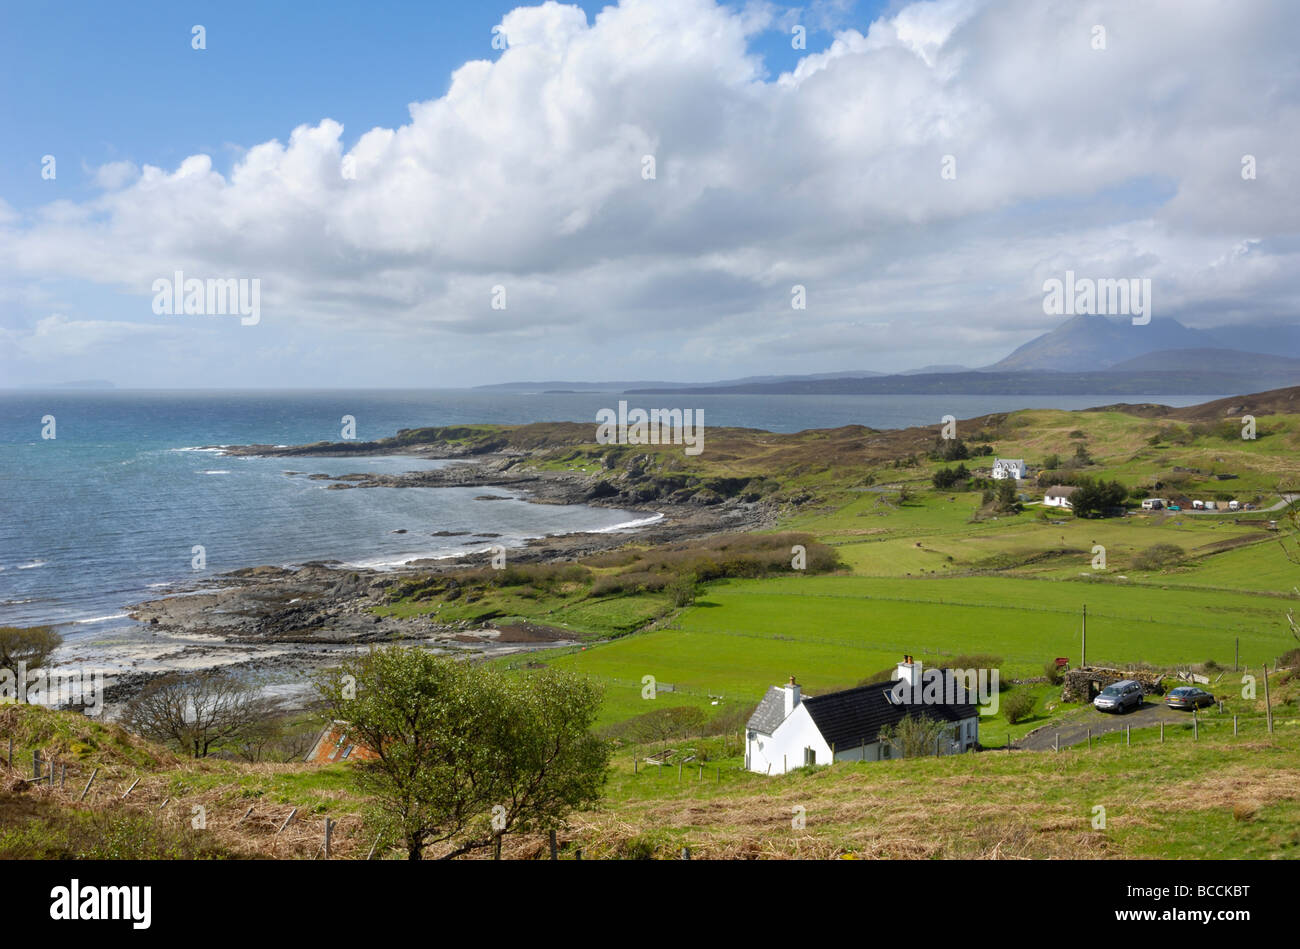 Tarskavaig, the Sleat, Isle of Skye, Scotland - Stock Image